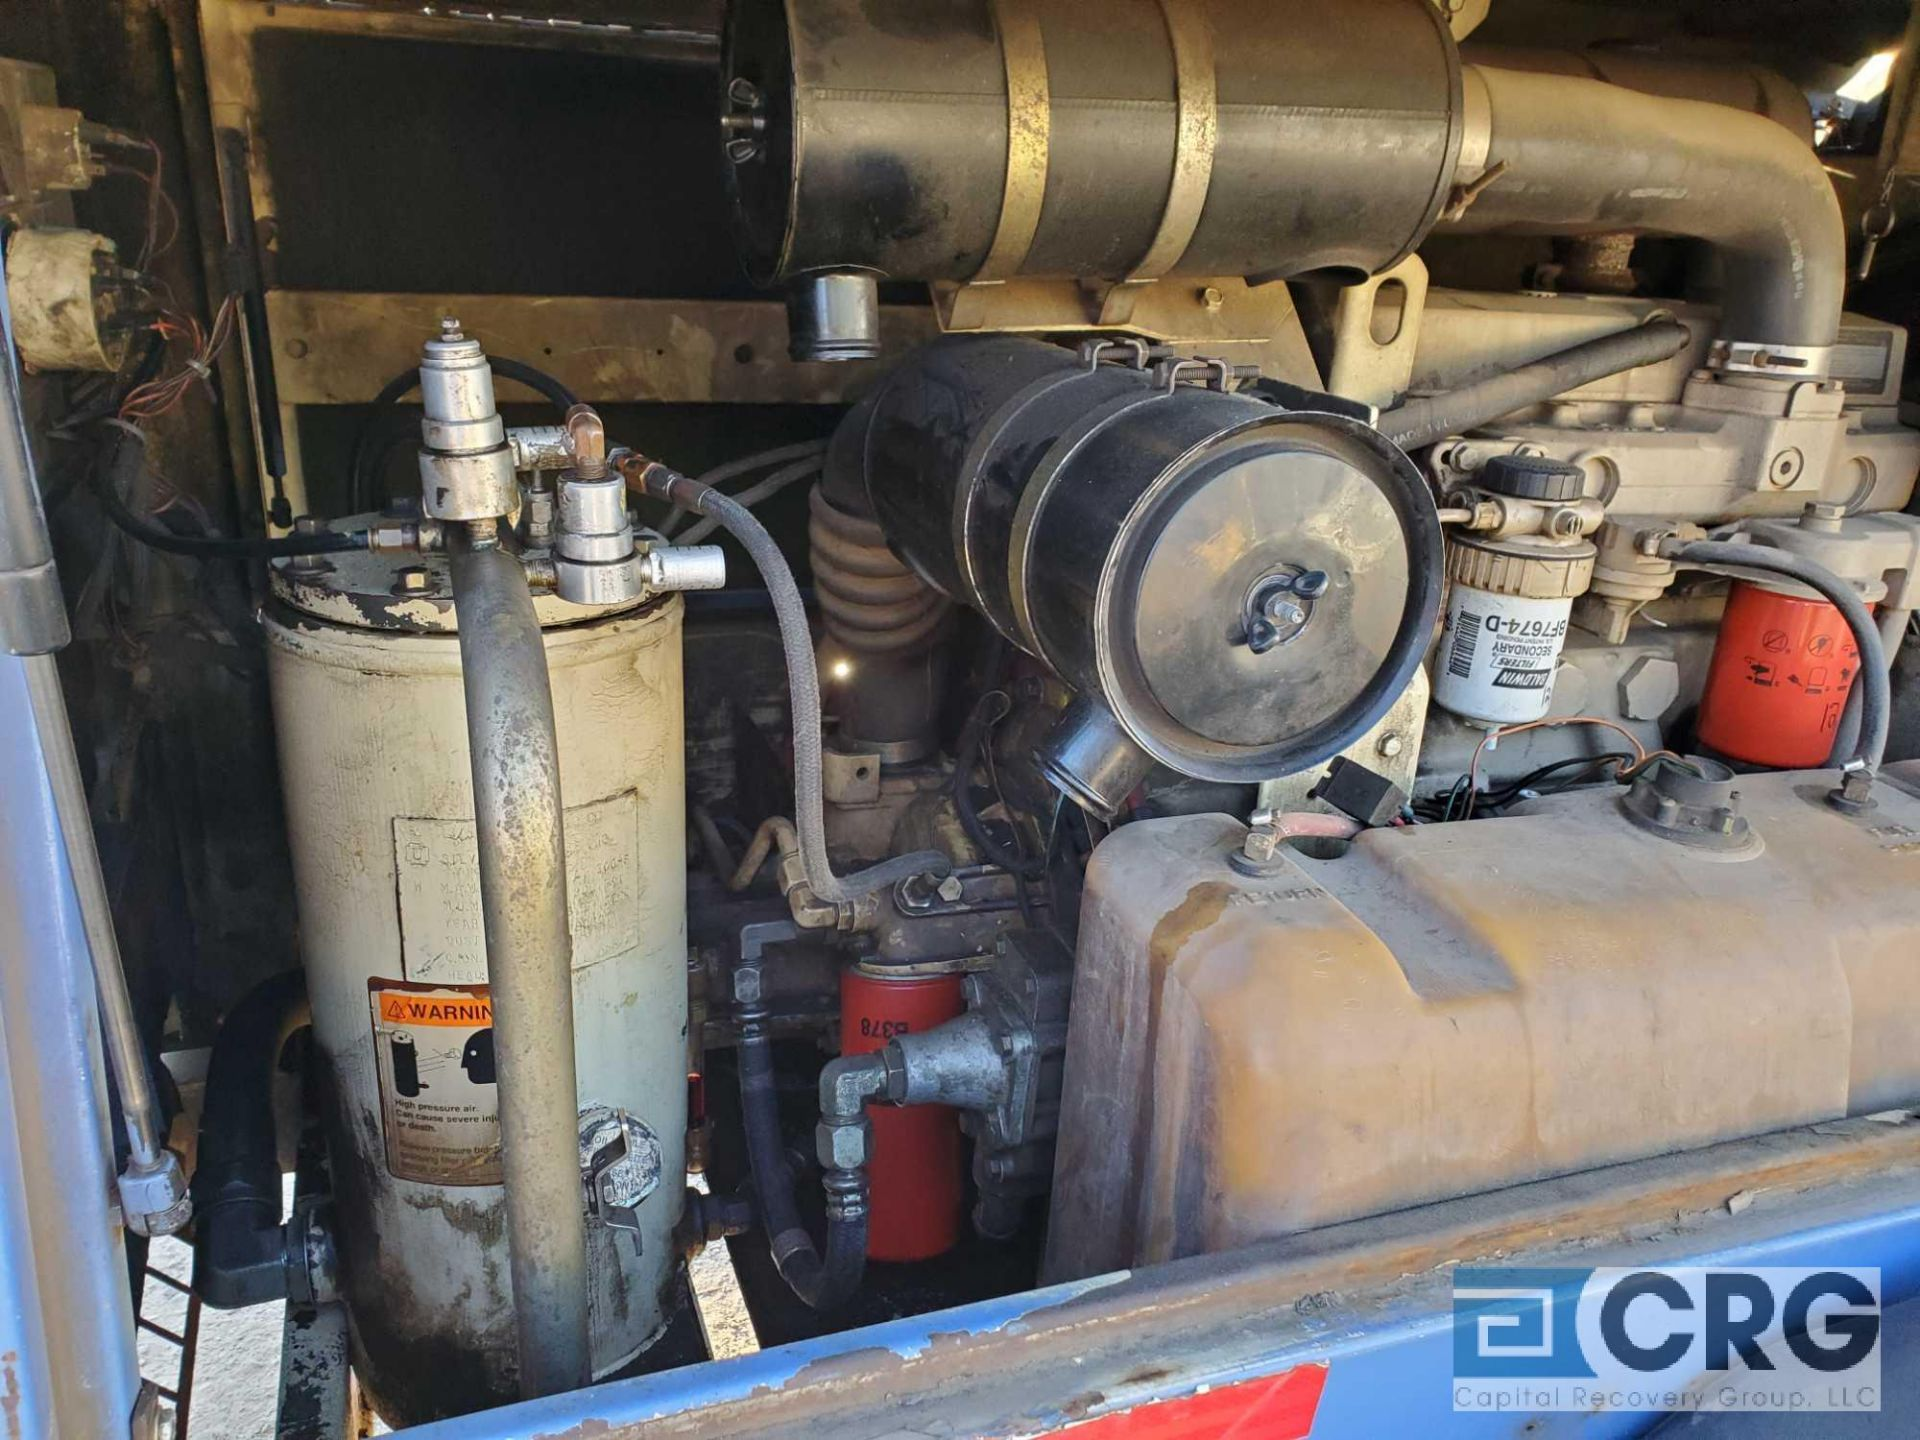 1997 Ingersoll Rand P185WJD tag along Air Compressor - Image 4 of 7